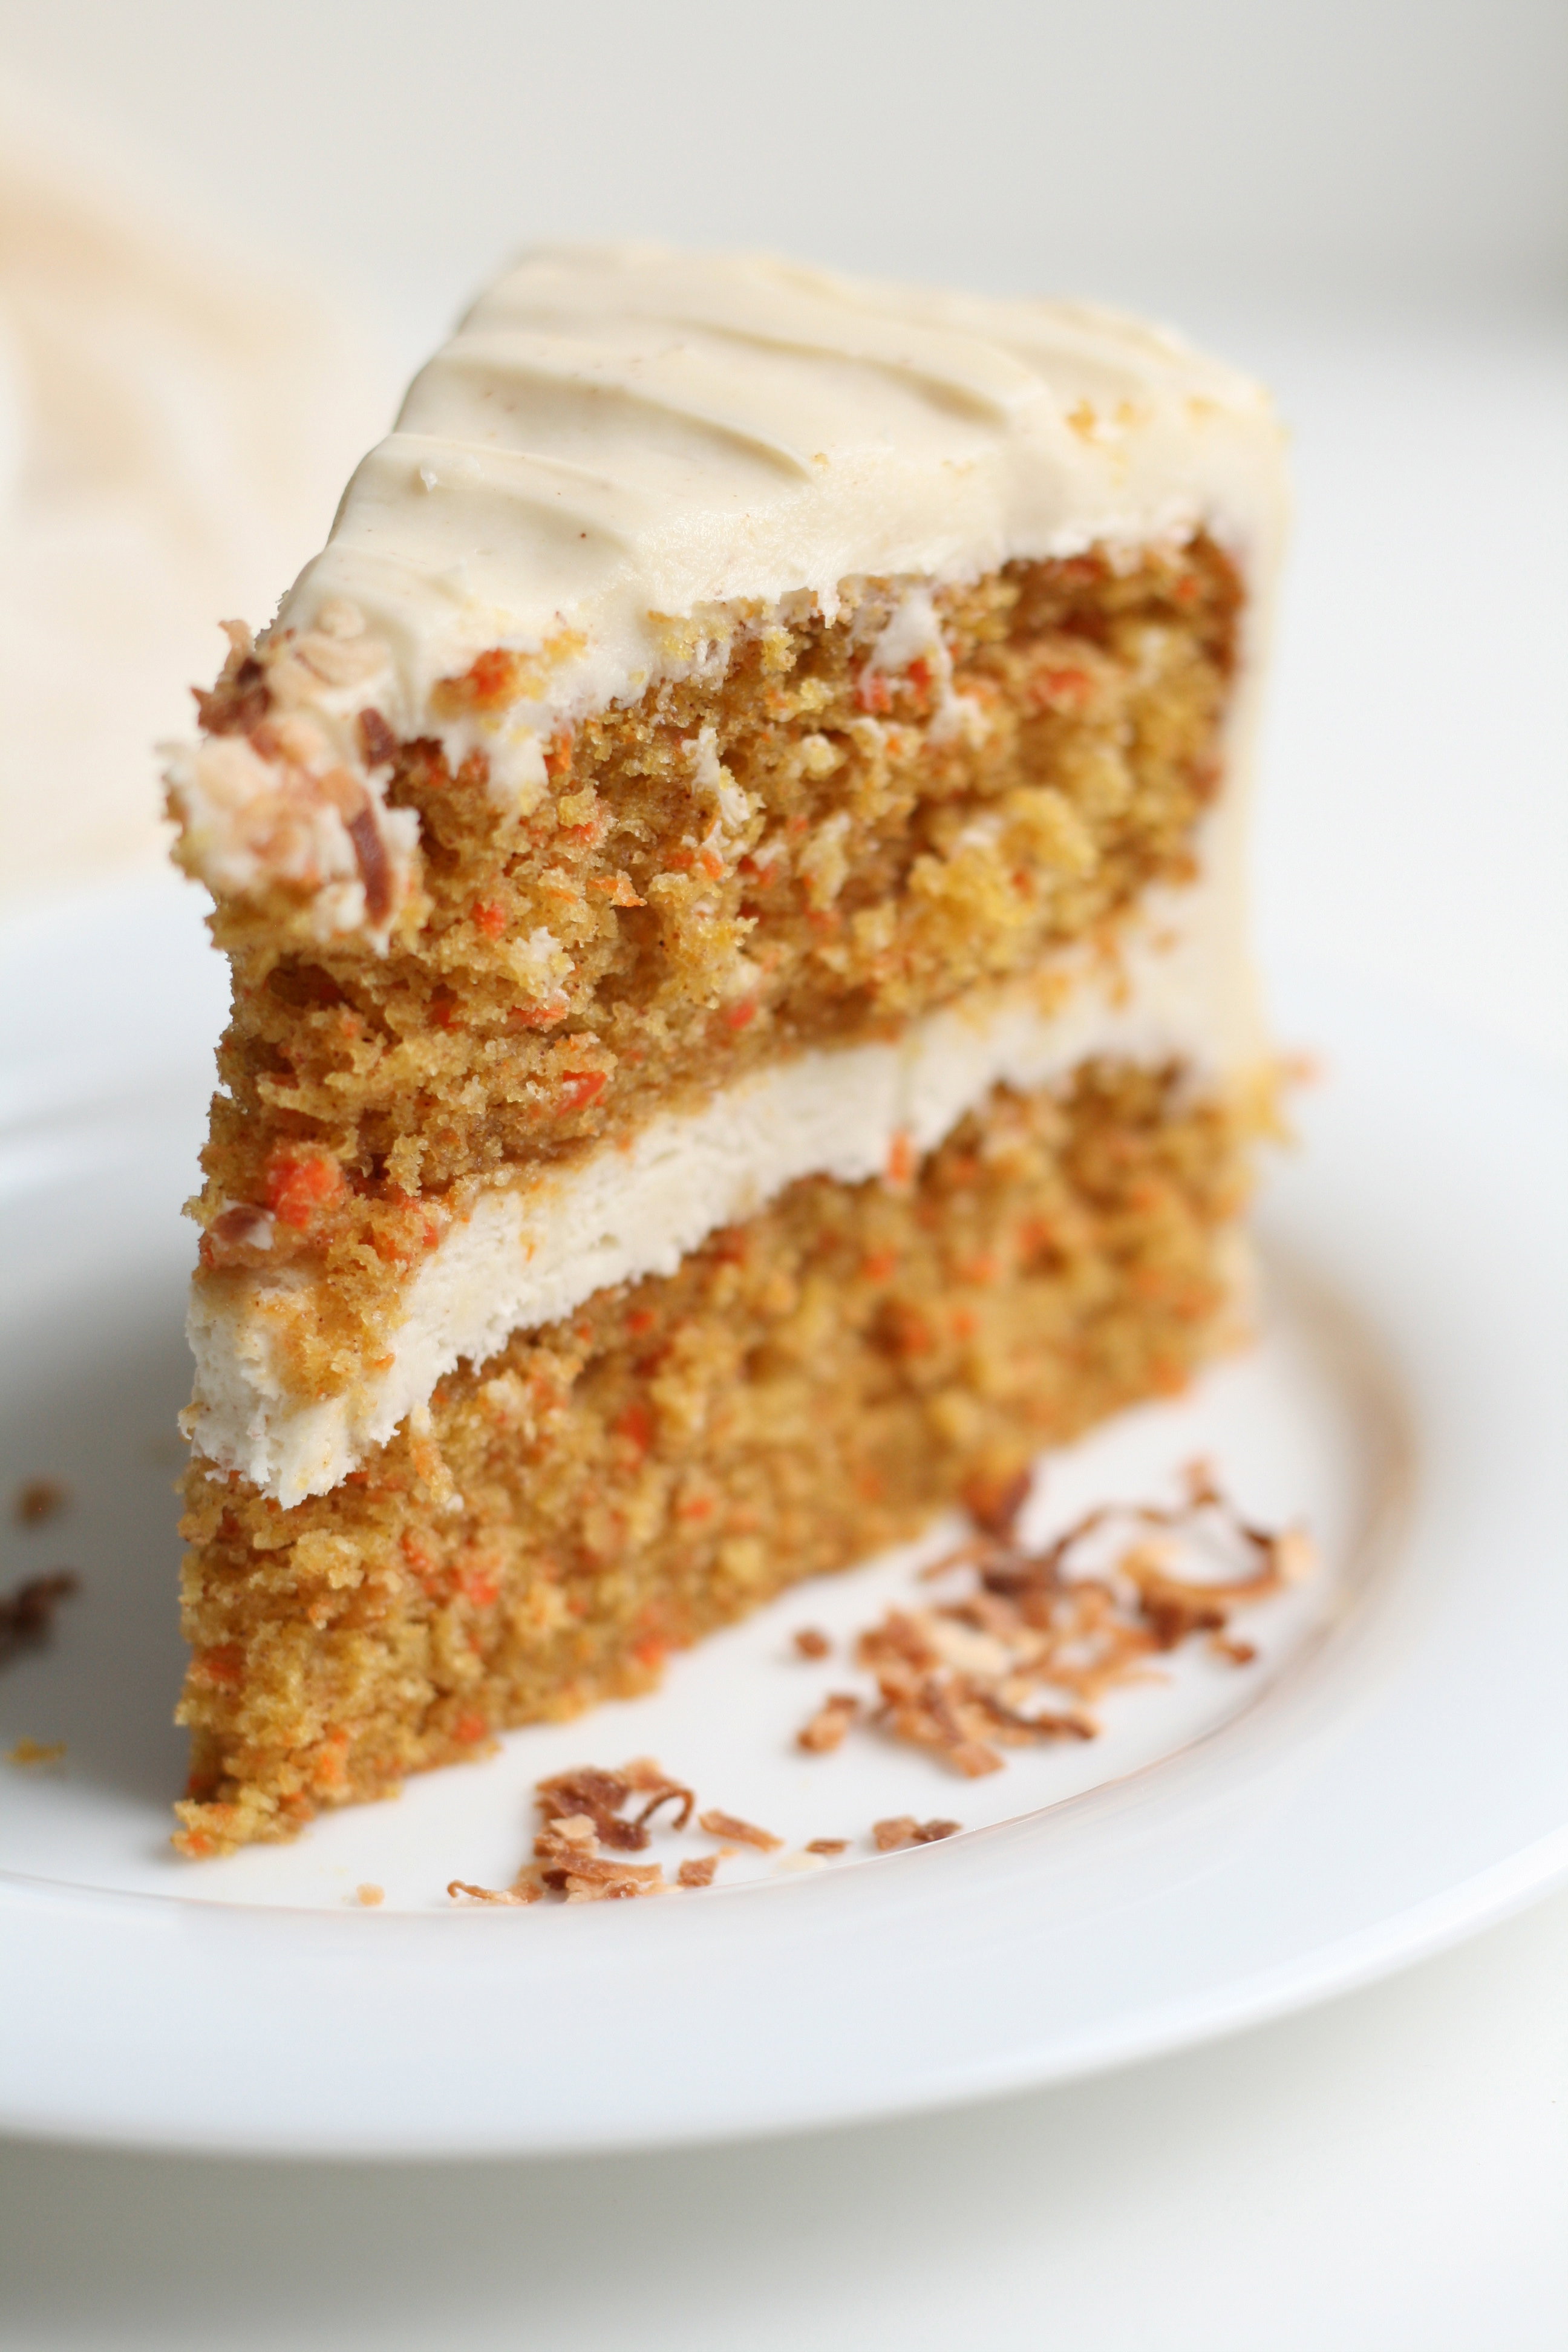 Carrots Cinnamon And Cream Chesse Cake